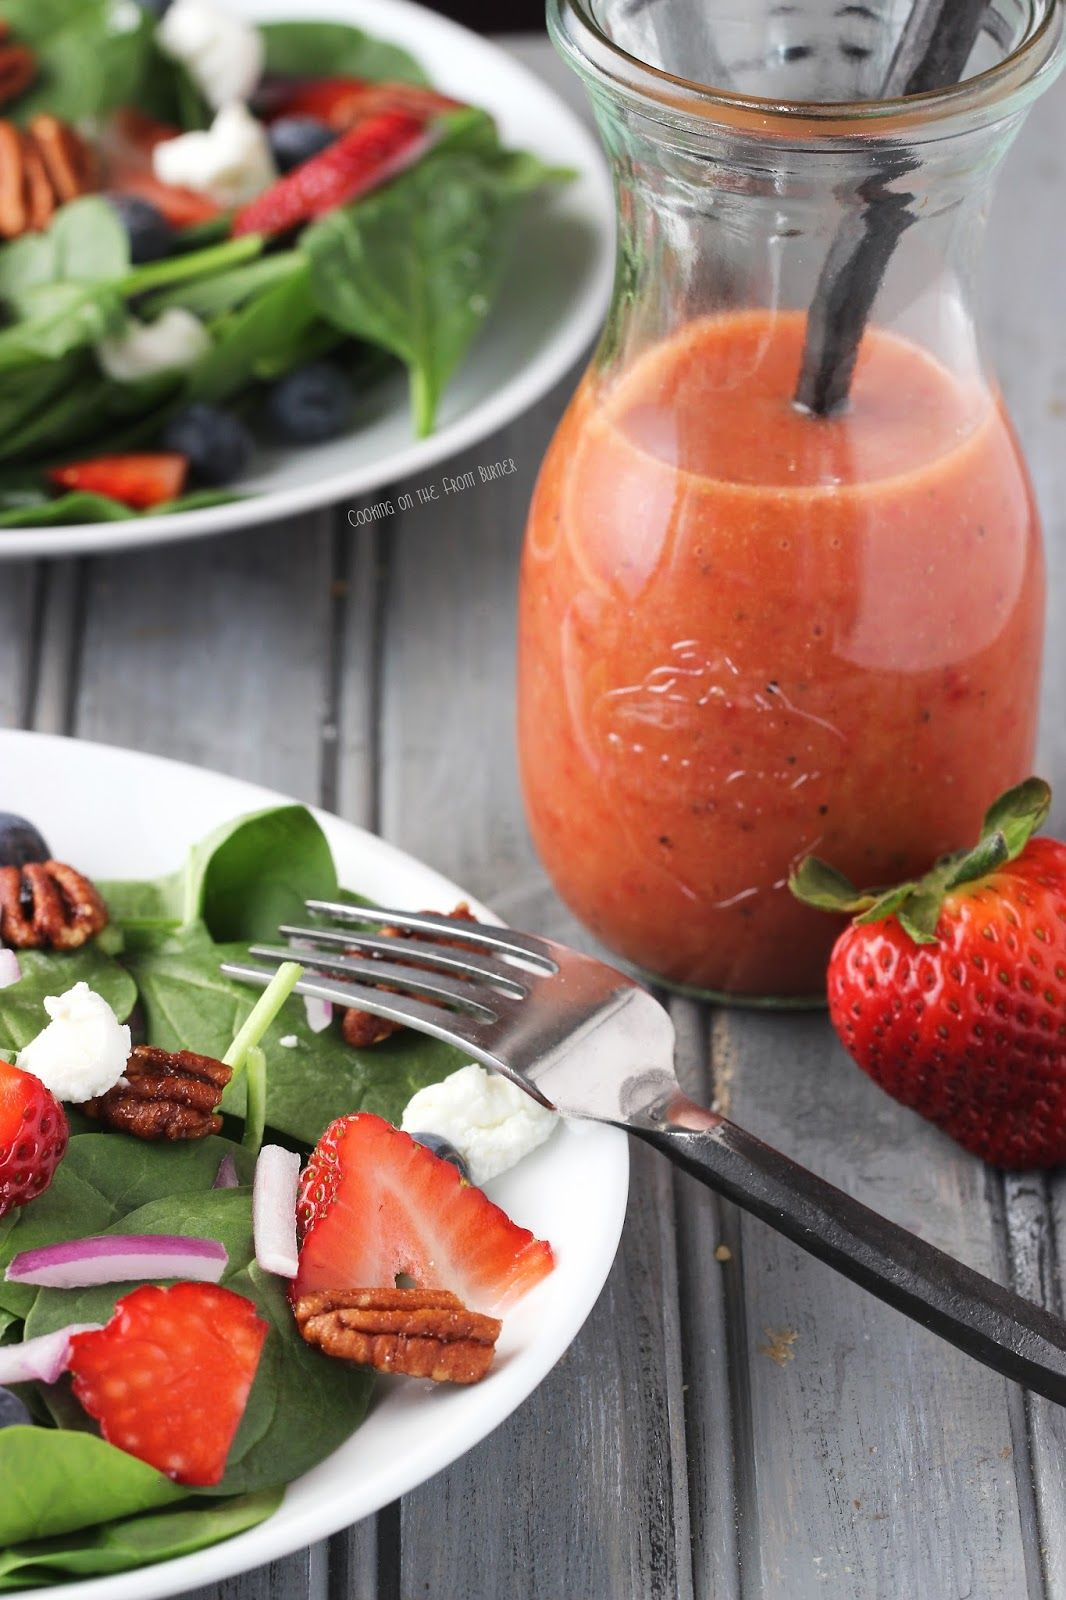 Strawberry Spinach Salad With Strawberry Vinaigrette Dressing Recipe Spinach Strawberry Salad Spinach Salad Strawberry Vinaigrette